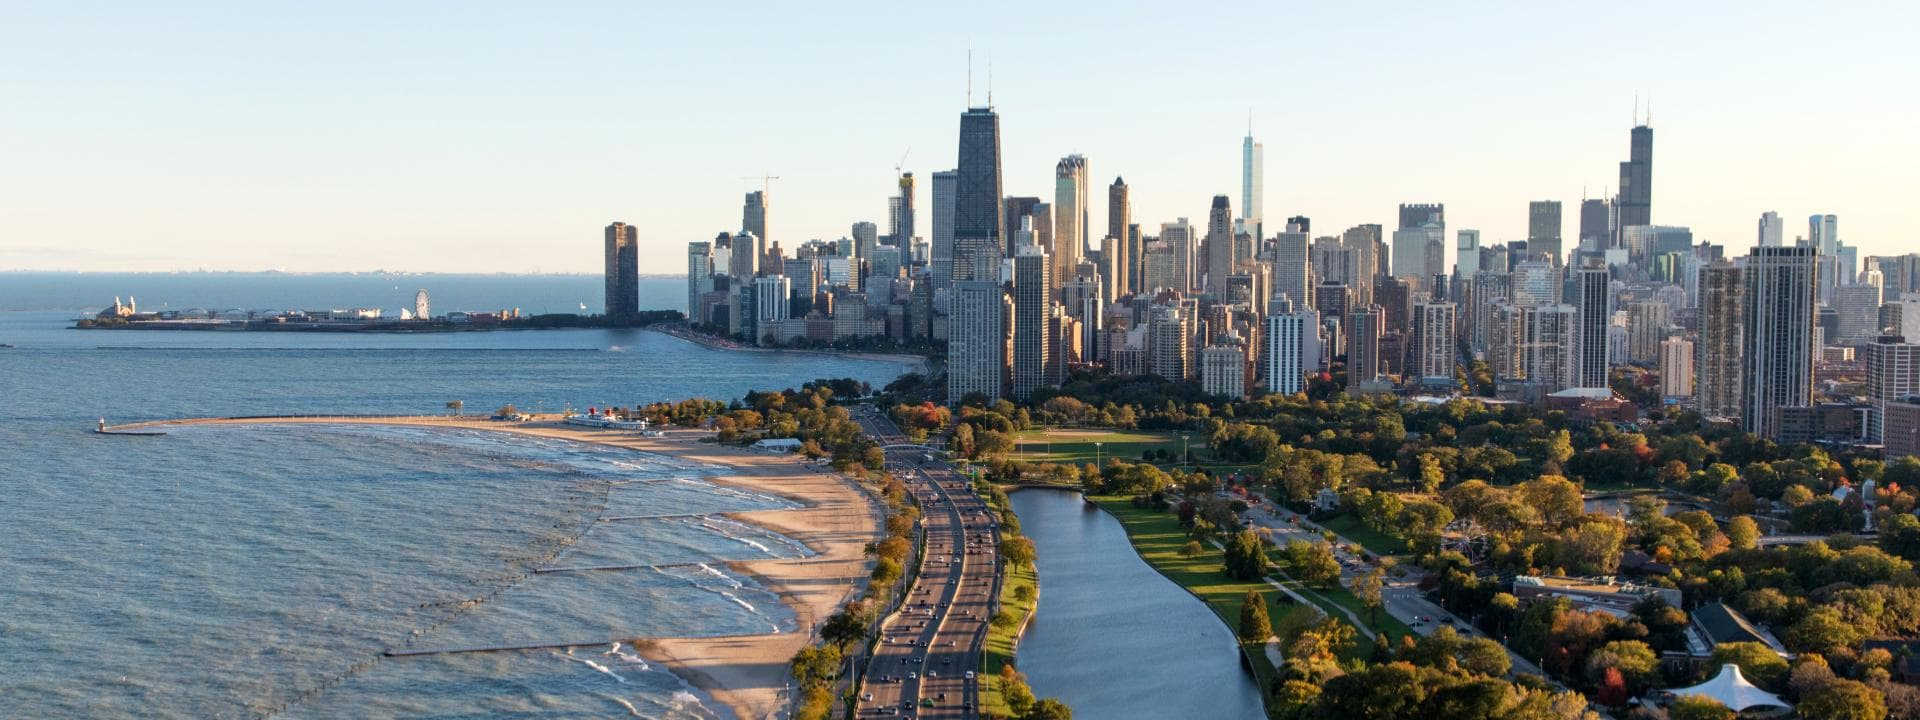 View of the Chicago lakeshore and downtown skyline